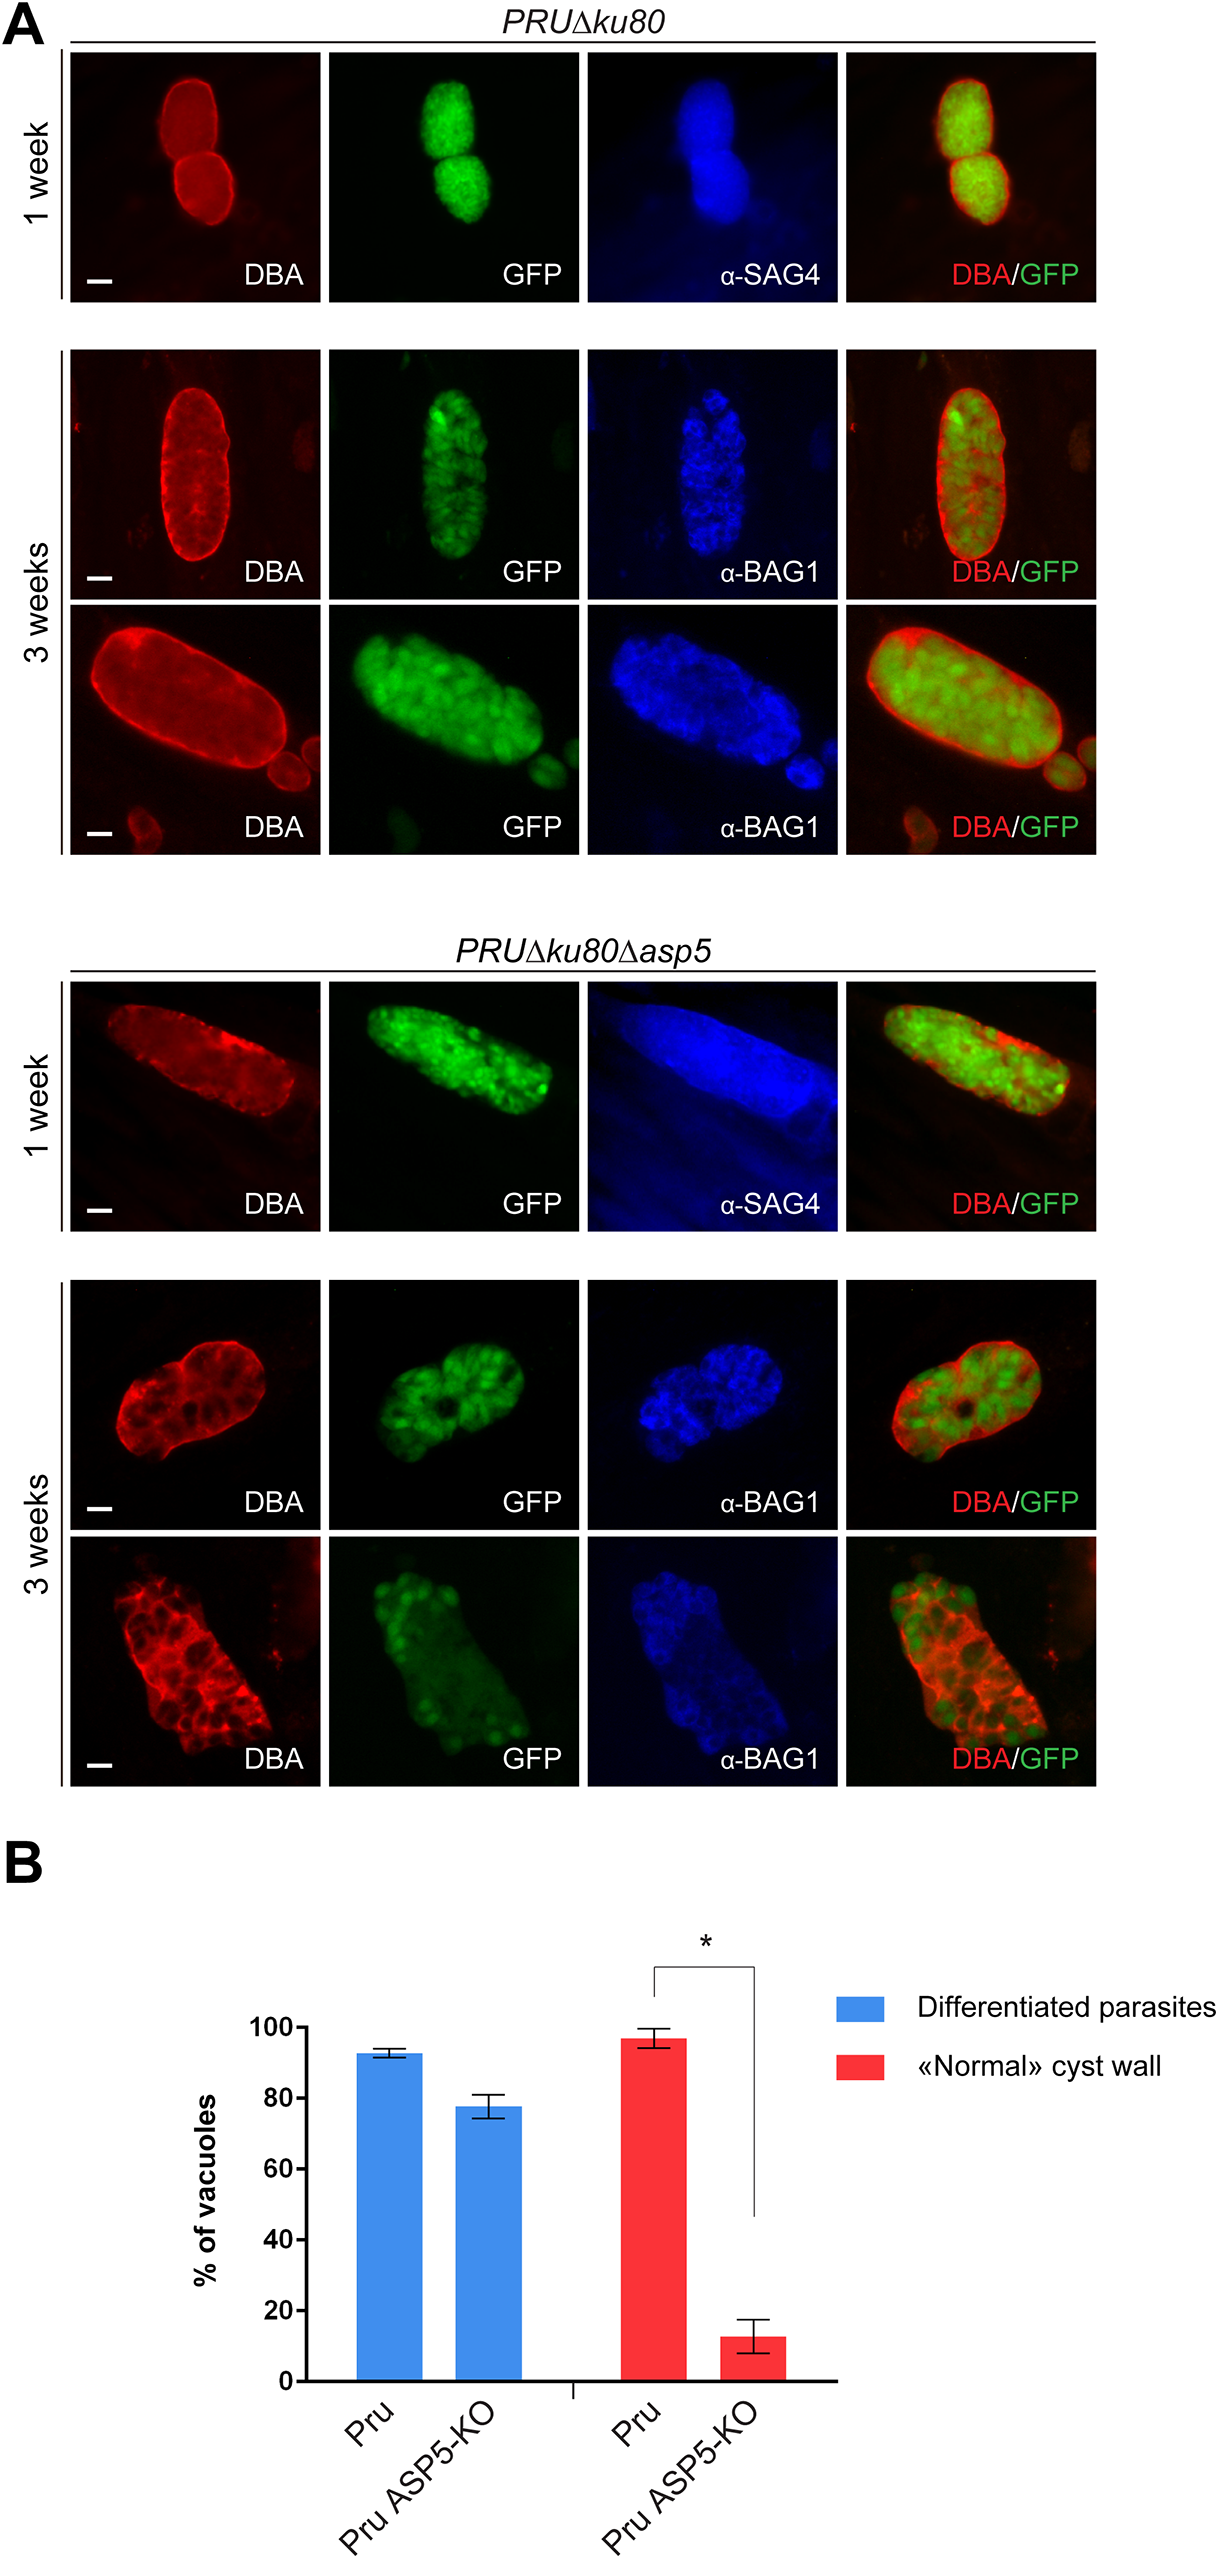 Cyst wall formation is affected in type II parasites lacking ASP5.